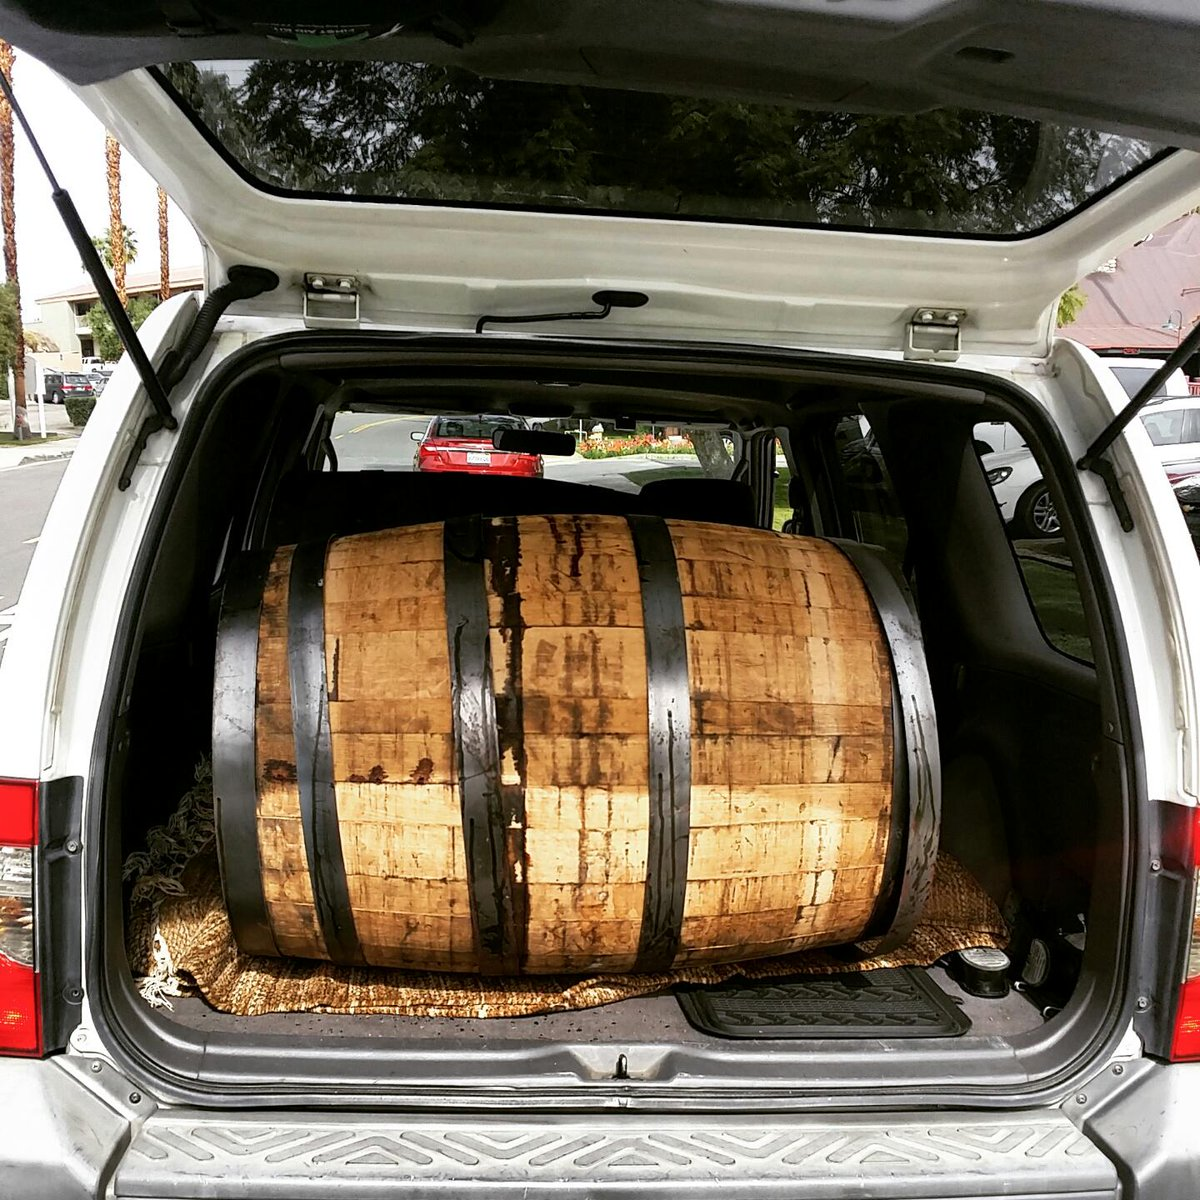 No, officer. I swear I haven't been drinking. Not sure why my car smells like whiskey & #craftbeer. @CVBrewingCo http://t.co/94kvPs61gp